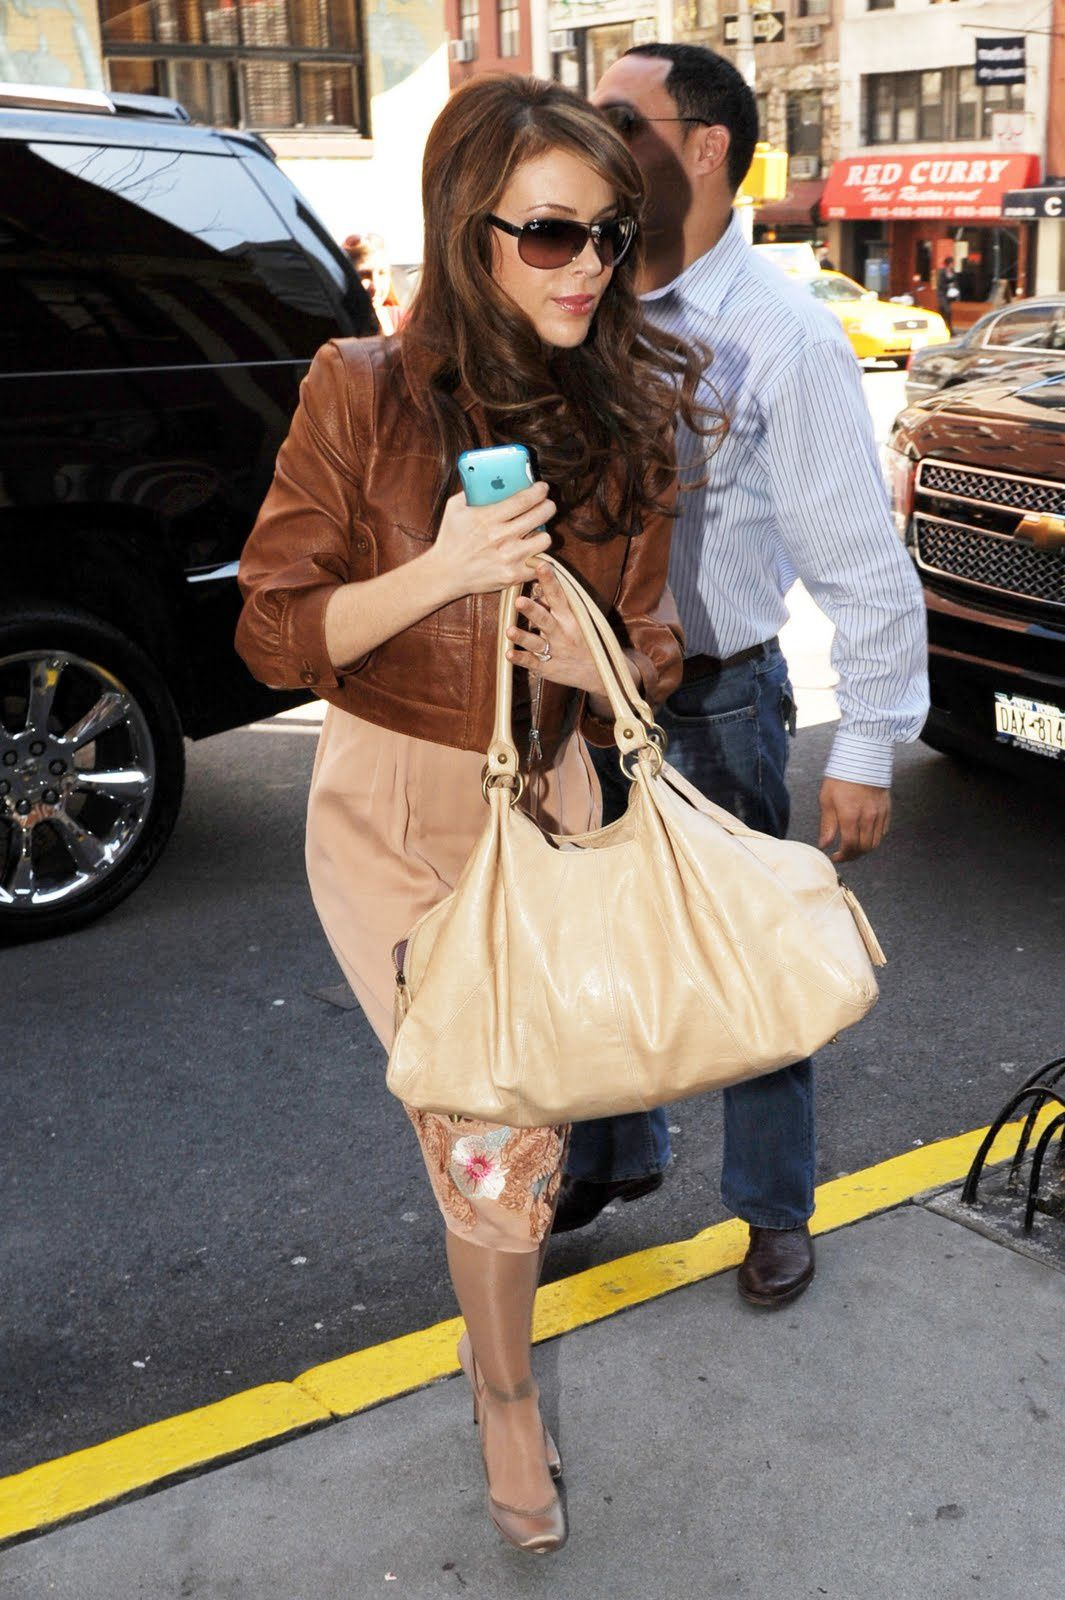 Alyssa_Milano_returns_to_her_Manhattan_hotel_03.31.09_236_1.jpg